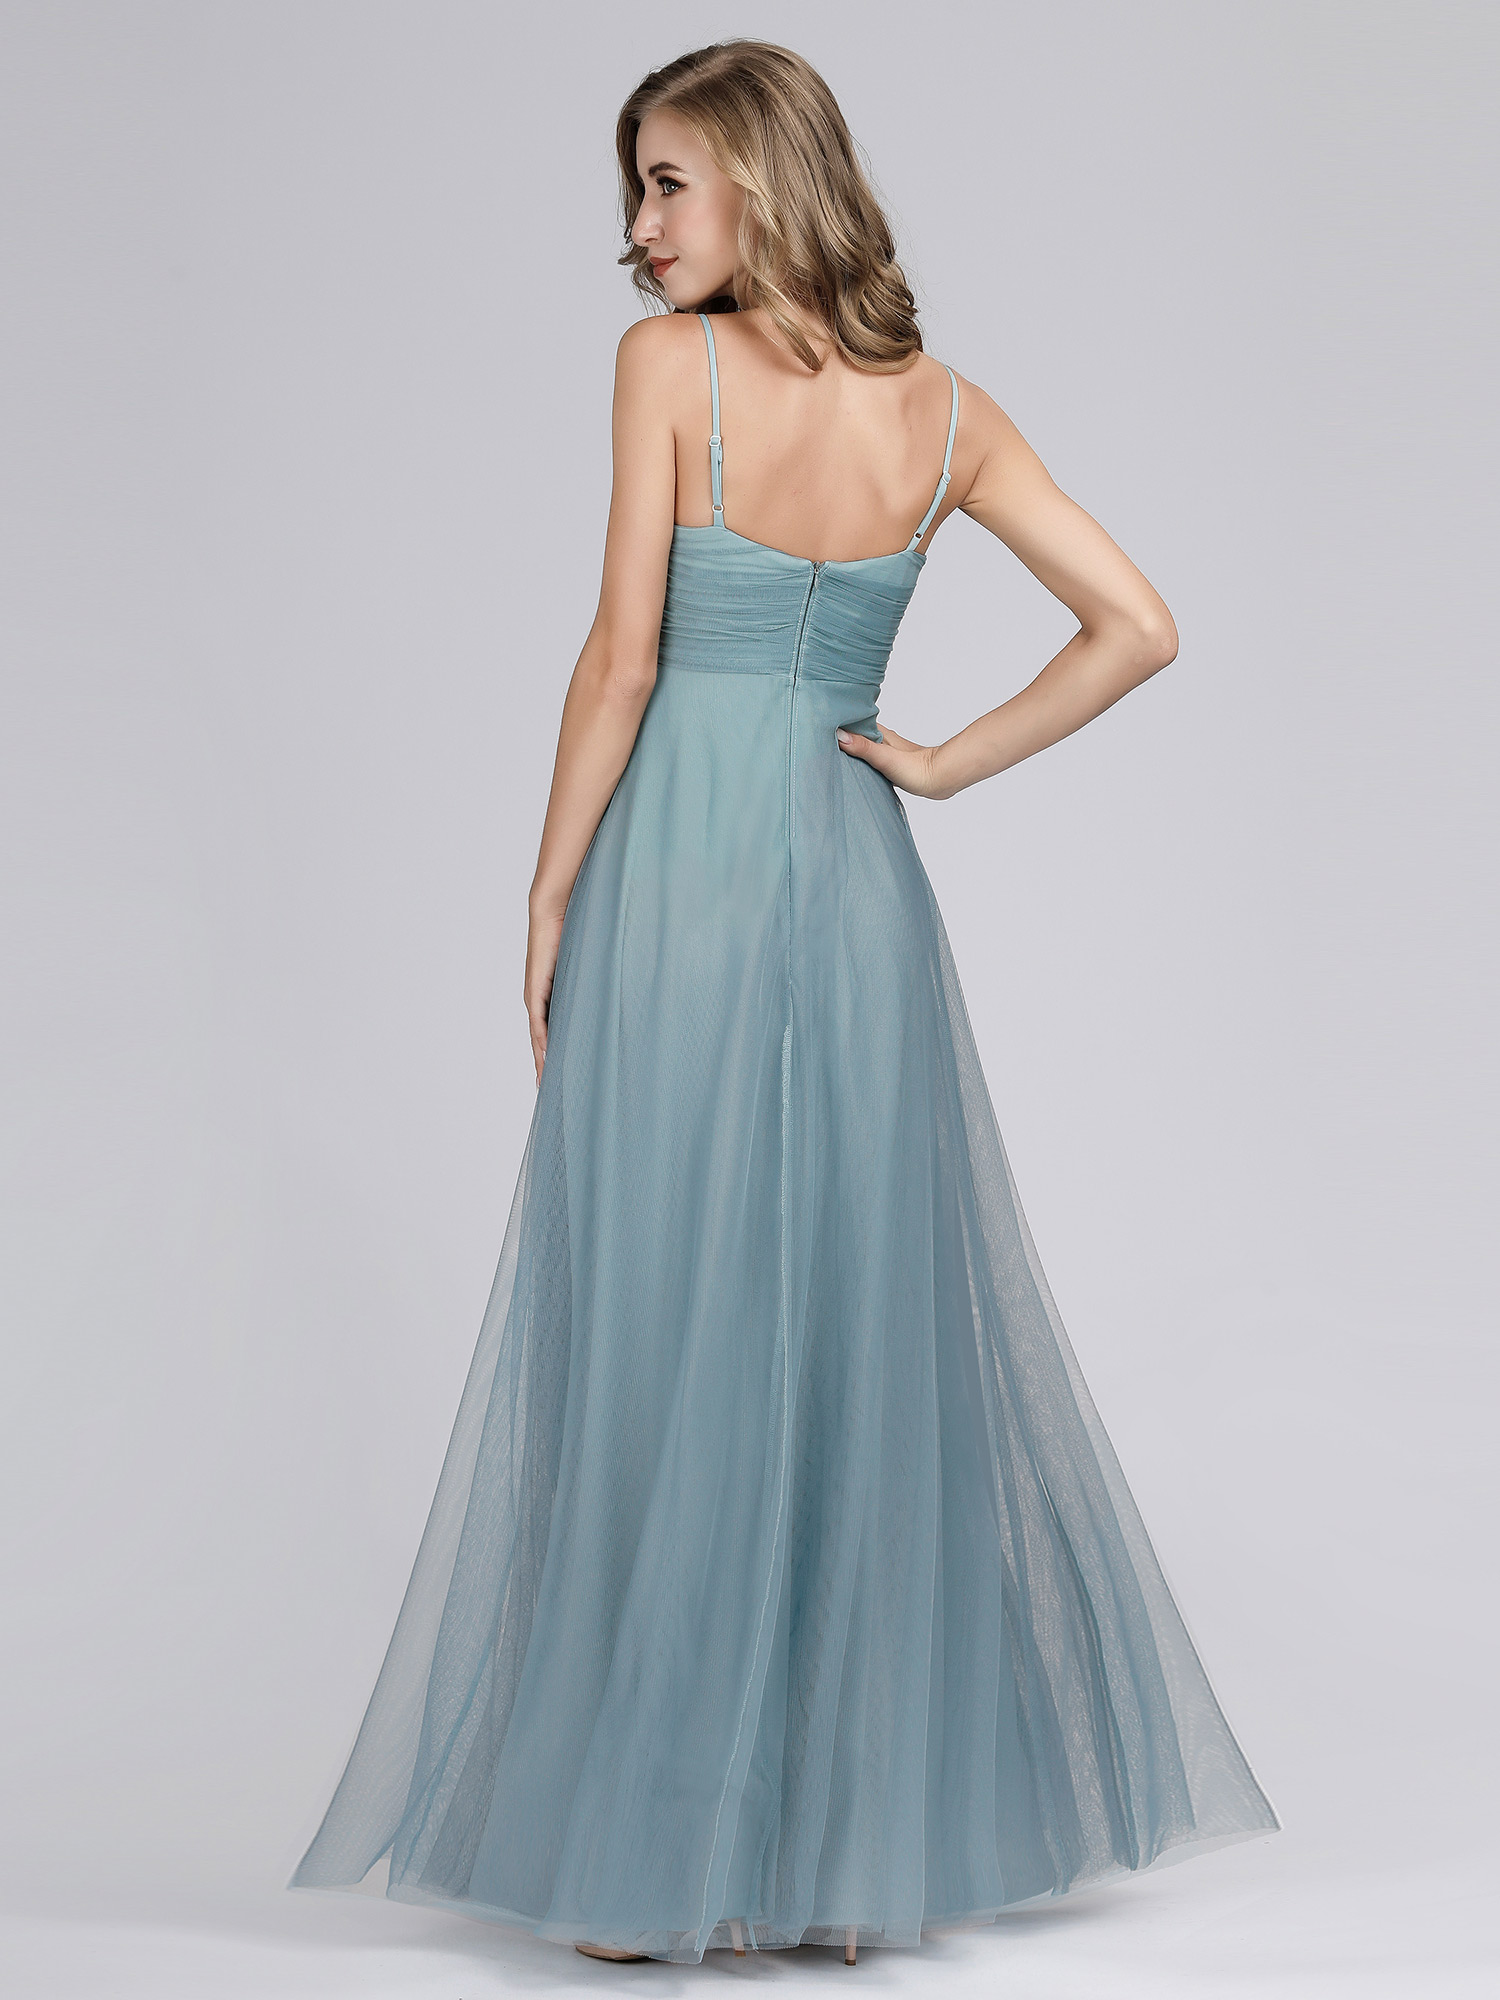 Ever-pretty-US-Formal-Evening-Prom-Gown-A-line-Cocktail-Homecoming-Party-Dresses thumbnail 10